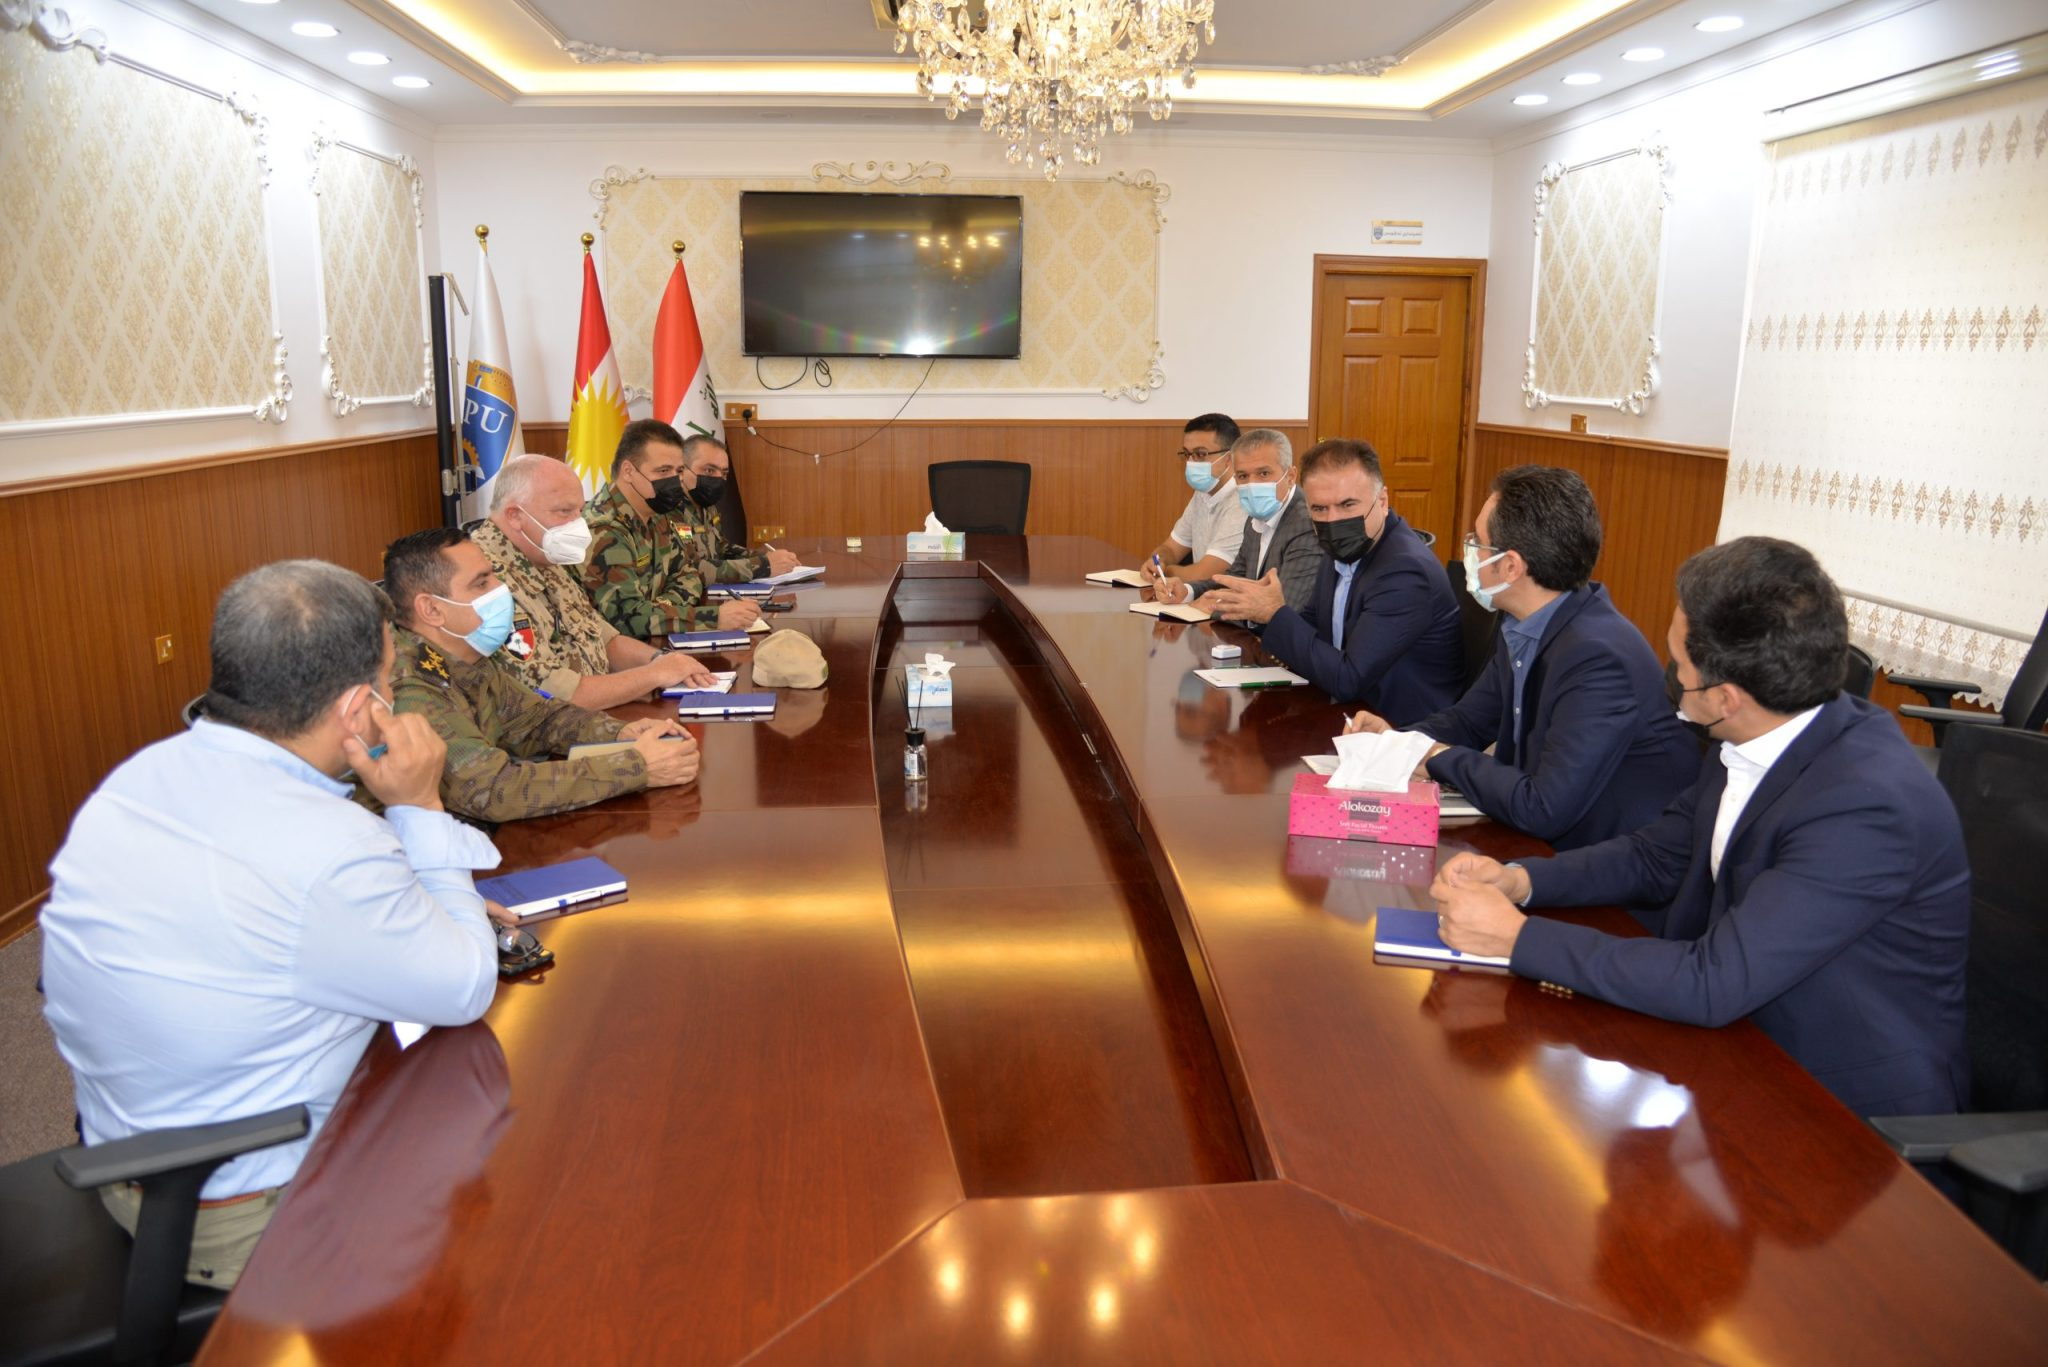 The Rector of the Erbil Polytechnic University Receives the Ministry of Peshmerga and the Coalition Forces delegation